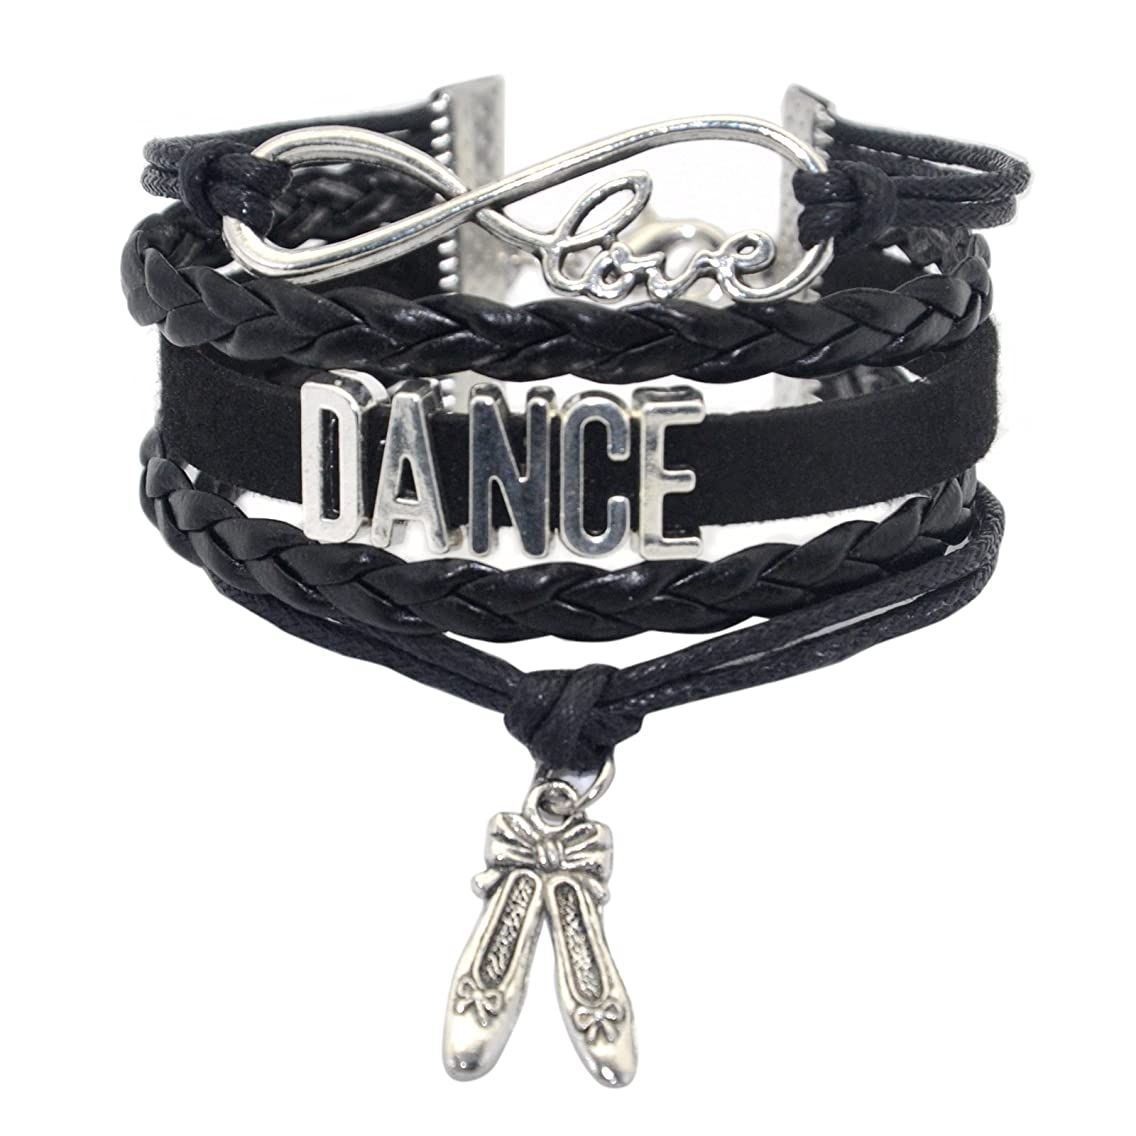 HHHbeauty Girls Dance Bracelet Dancing Belly Ballroom Just Dance Charm Bracelet Dancer Gifts for Women, Girls, Dancers, Men, Boys, Dance Mom, Dance Teacher, Dance Lovers